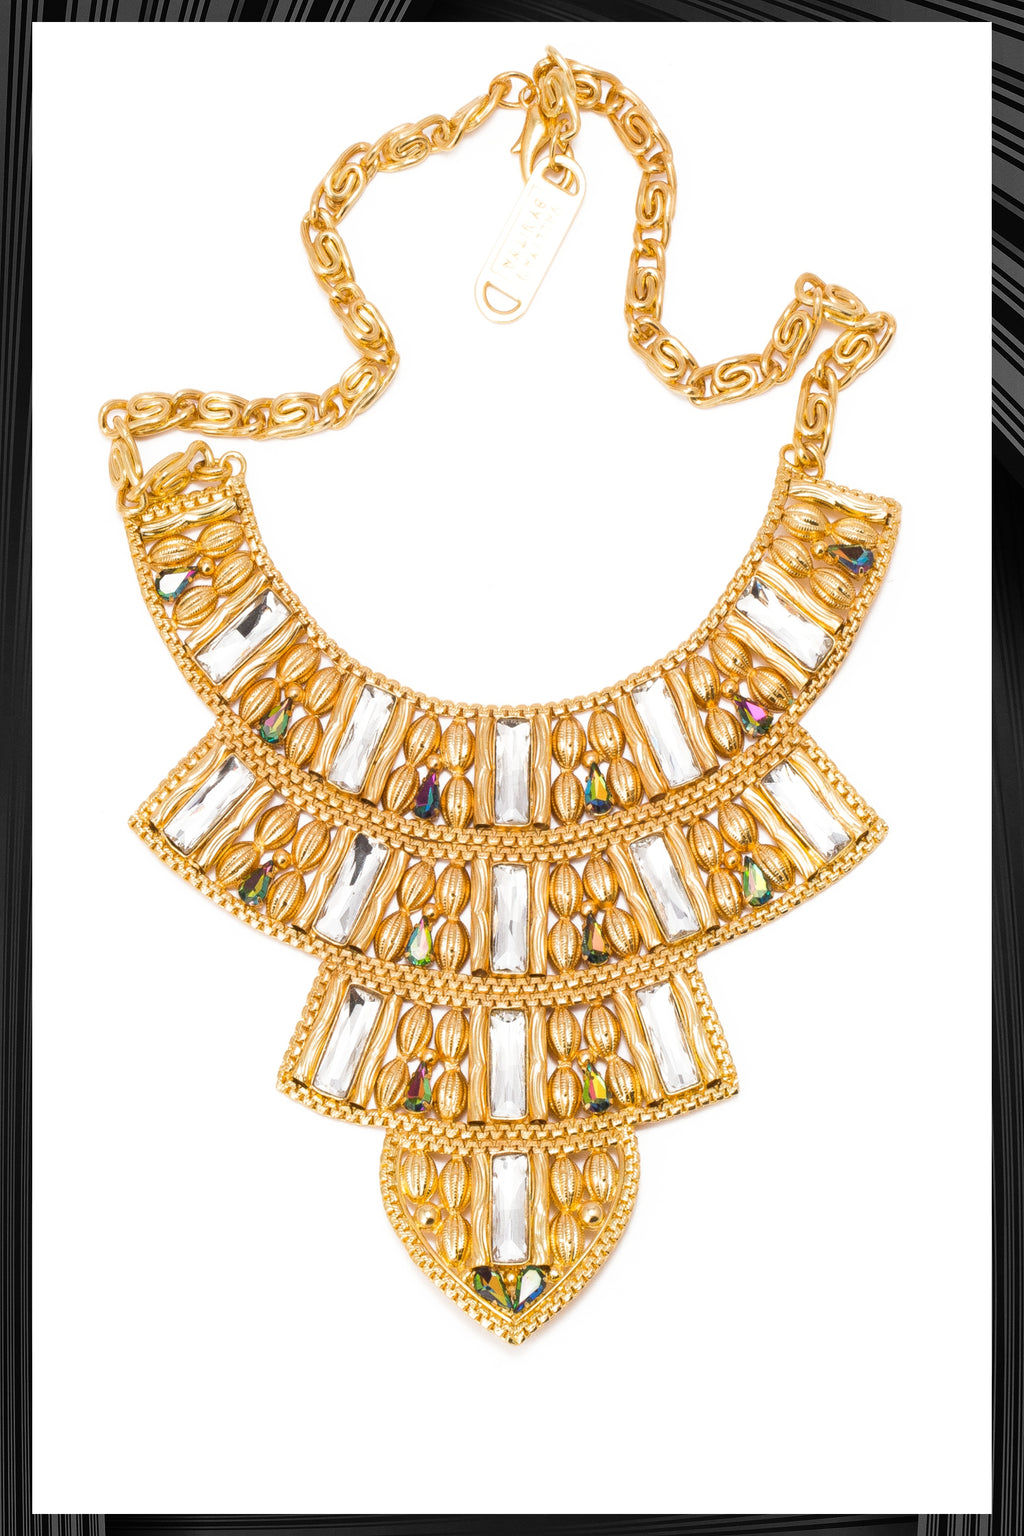 Marhabba Necklace | Free Delivery - Quick Shipping